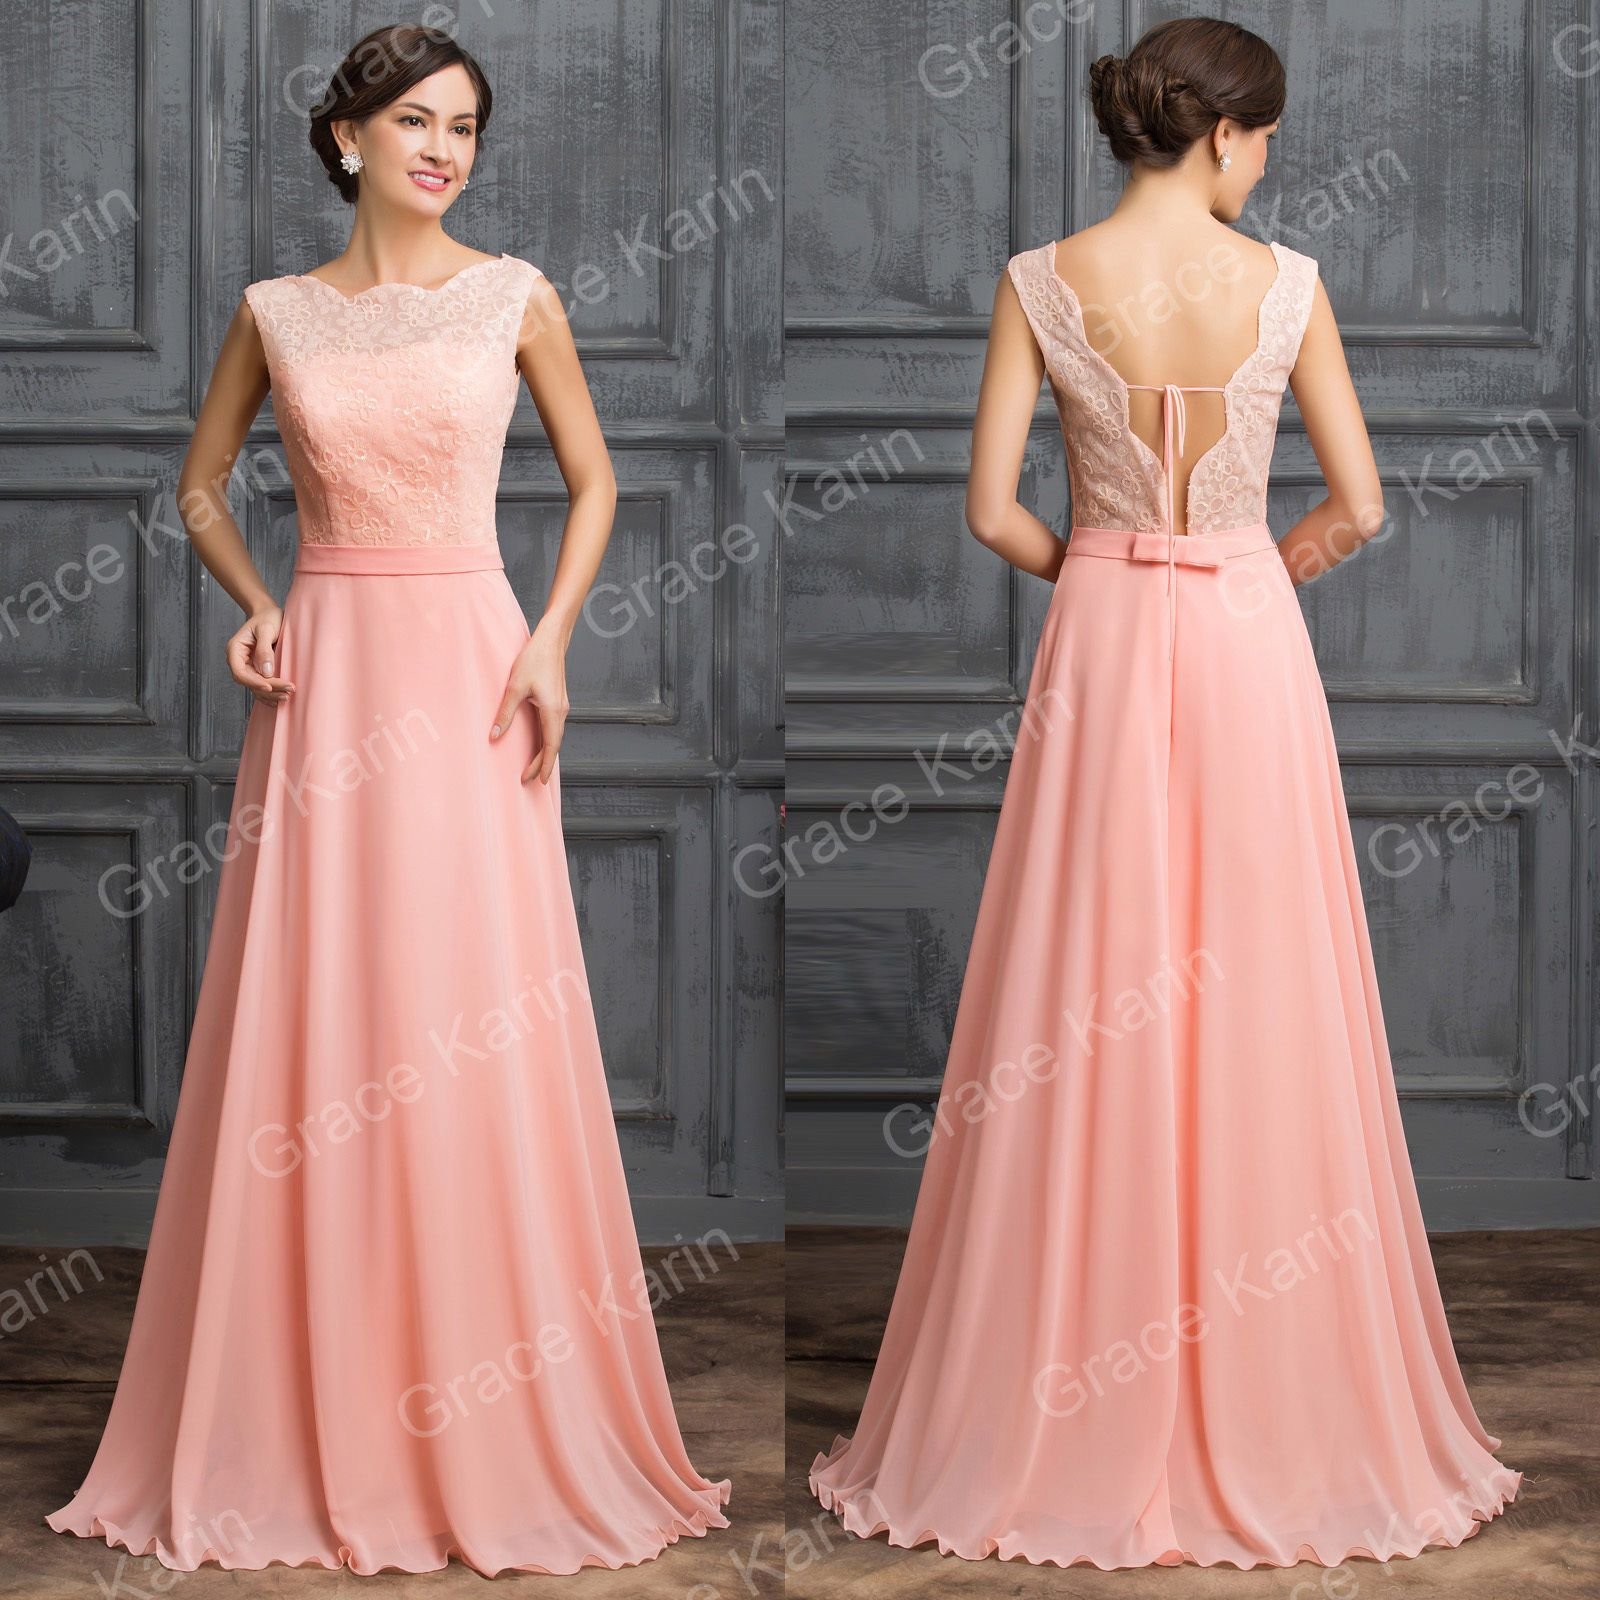 Women lace formal long homecoming bridesmaid wedding prom light pink